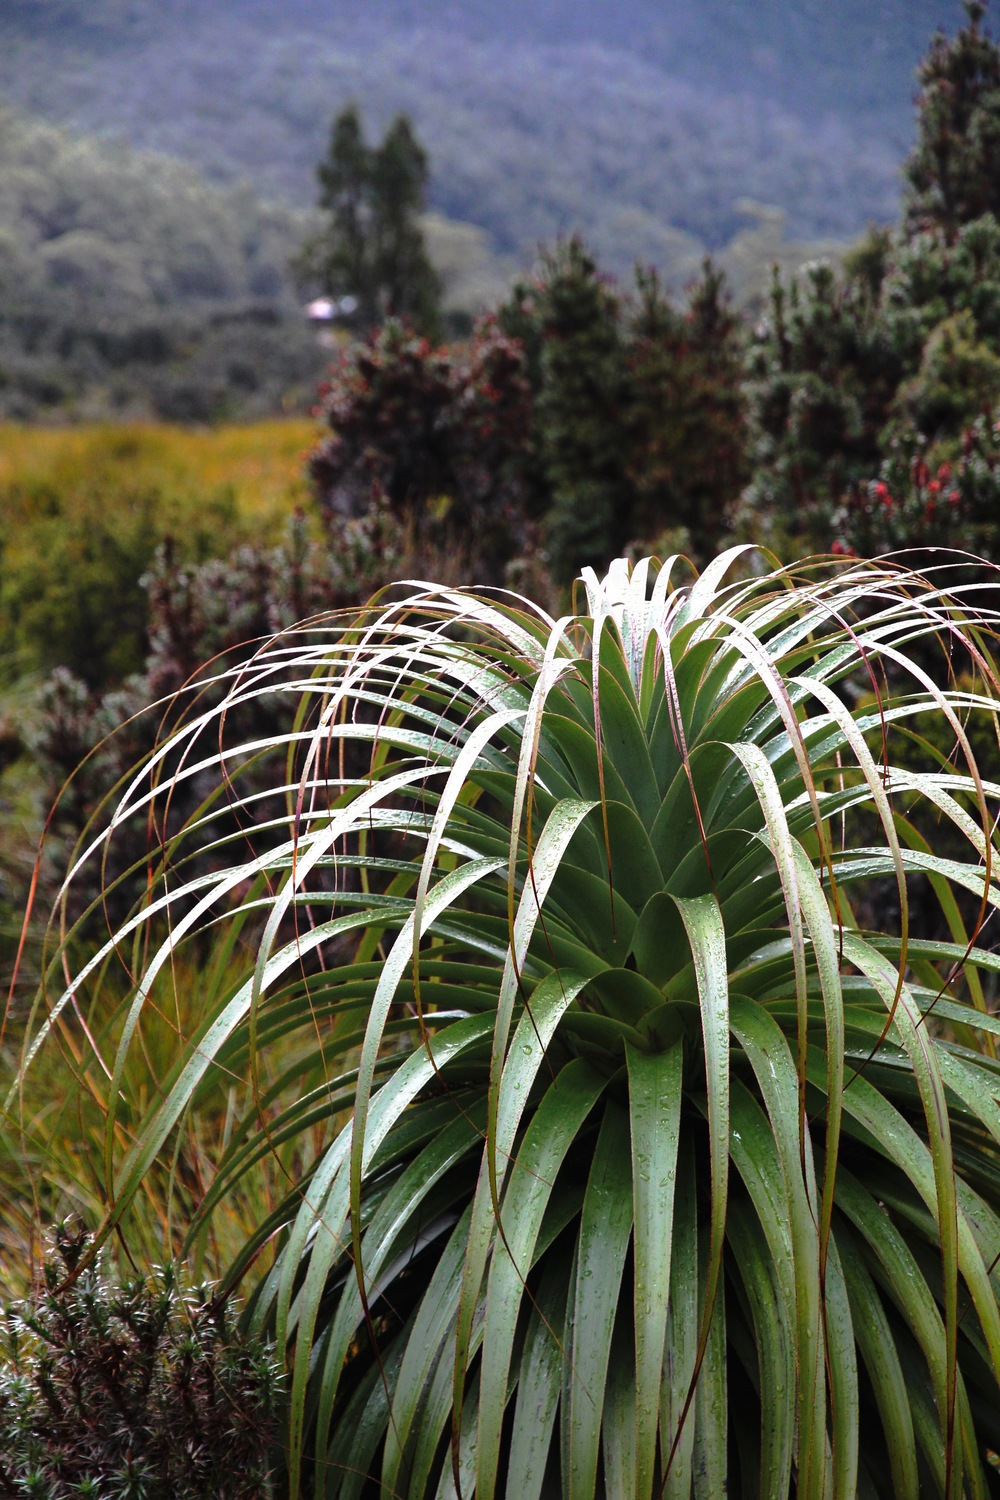 Richea Pandanifolia in Mount Field National Park